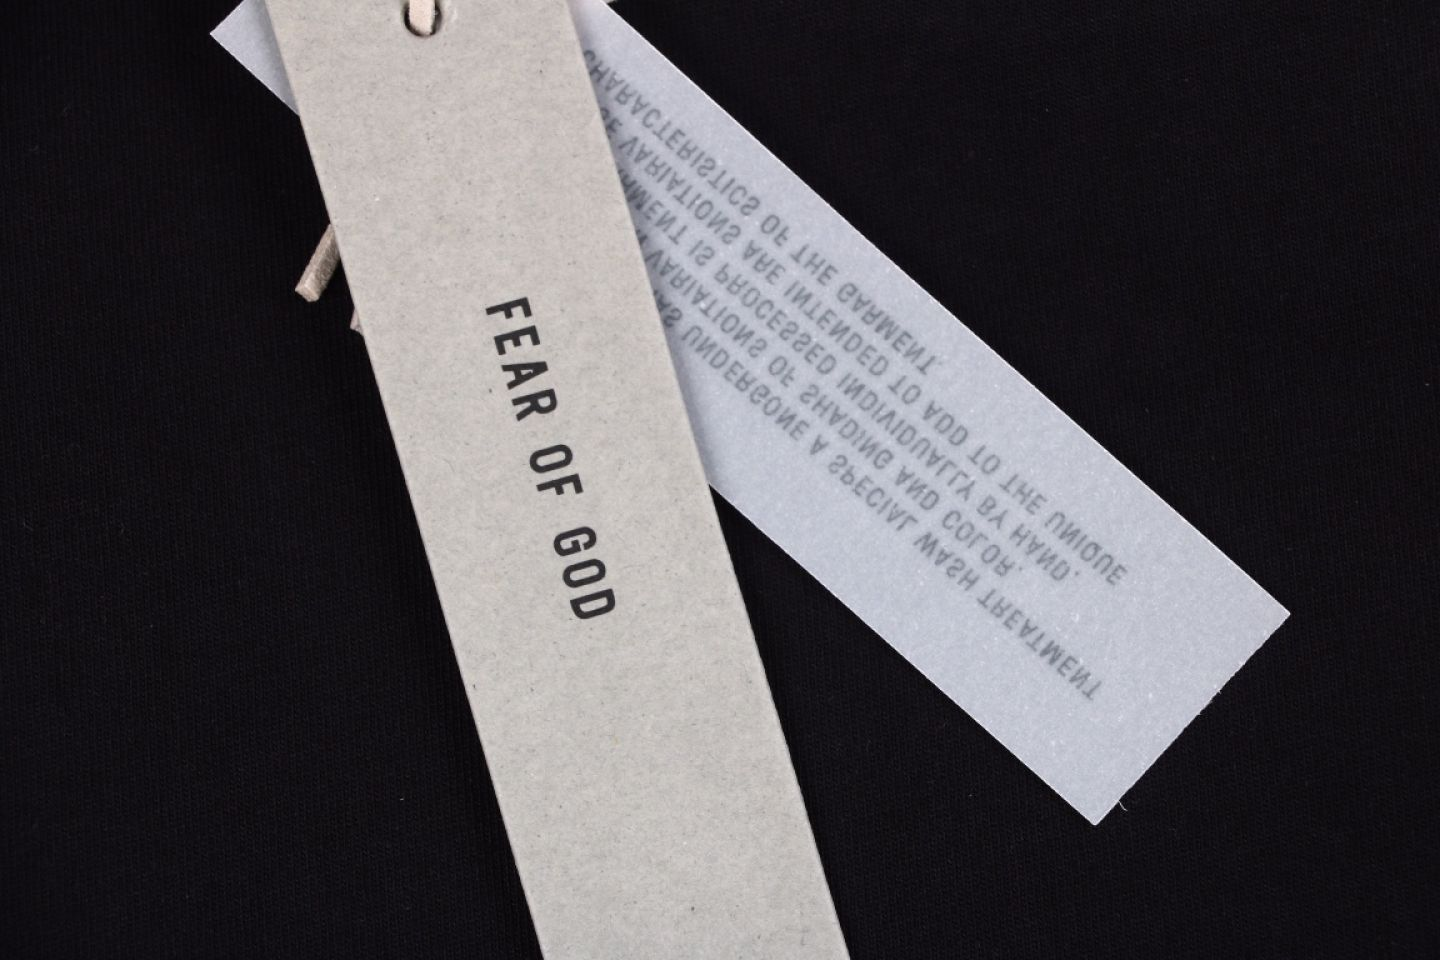 Shirt Fear of God classic letter logo printing ree on chest 4 3